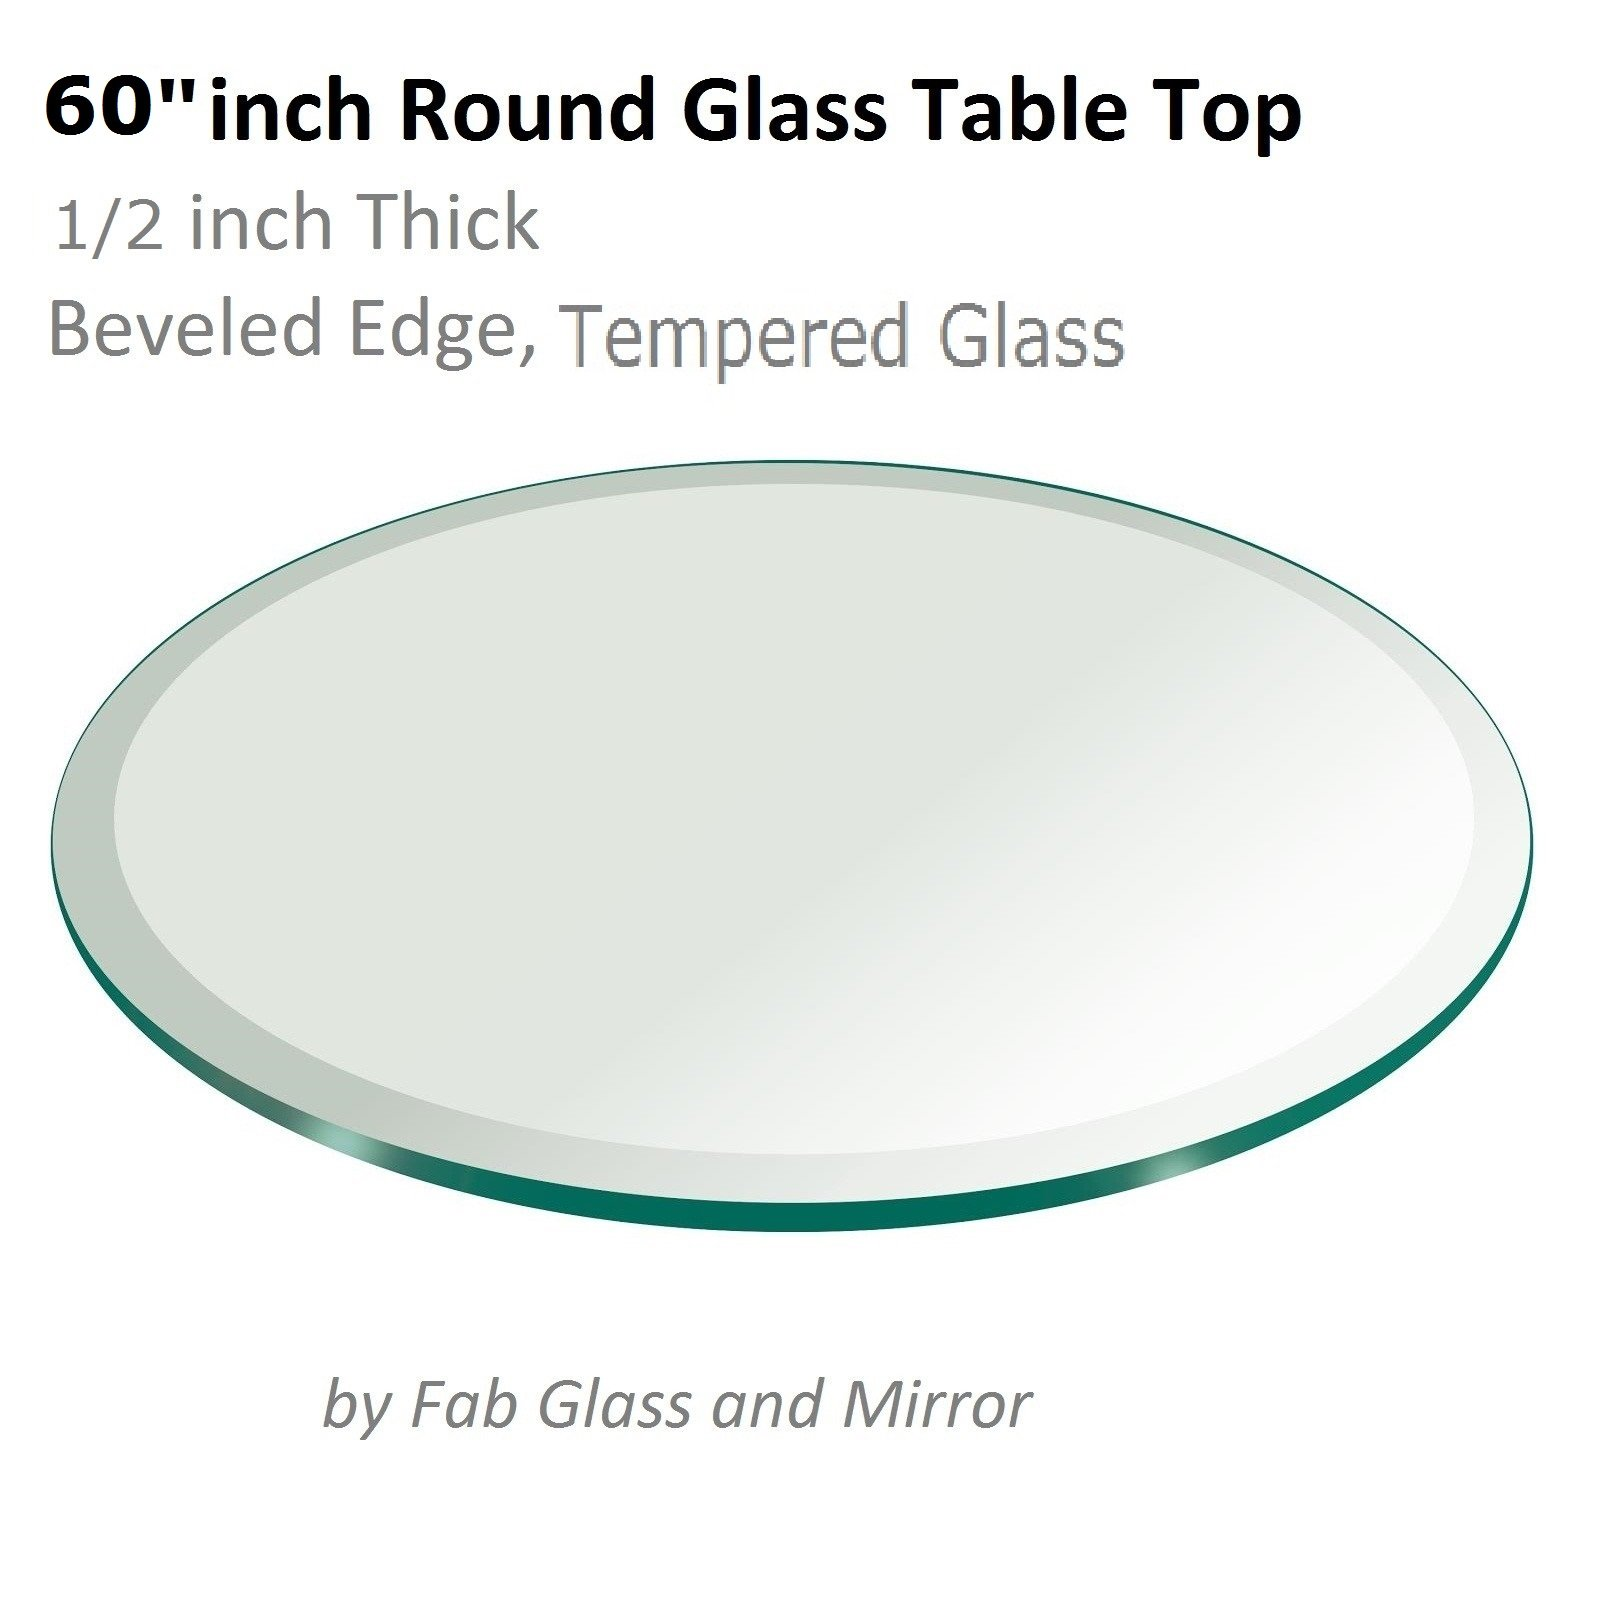 60'' Inch Round Glass Table Top 1/2'' Thick Tempered Beveled Edge by Fab Glass and Mirror